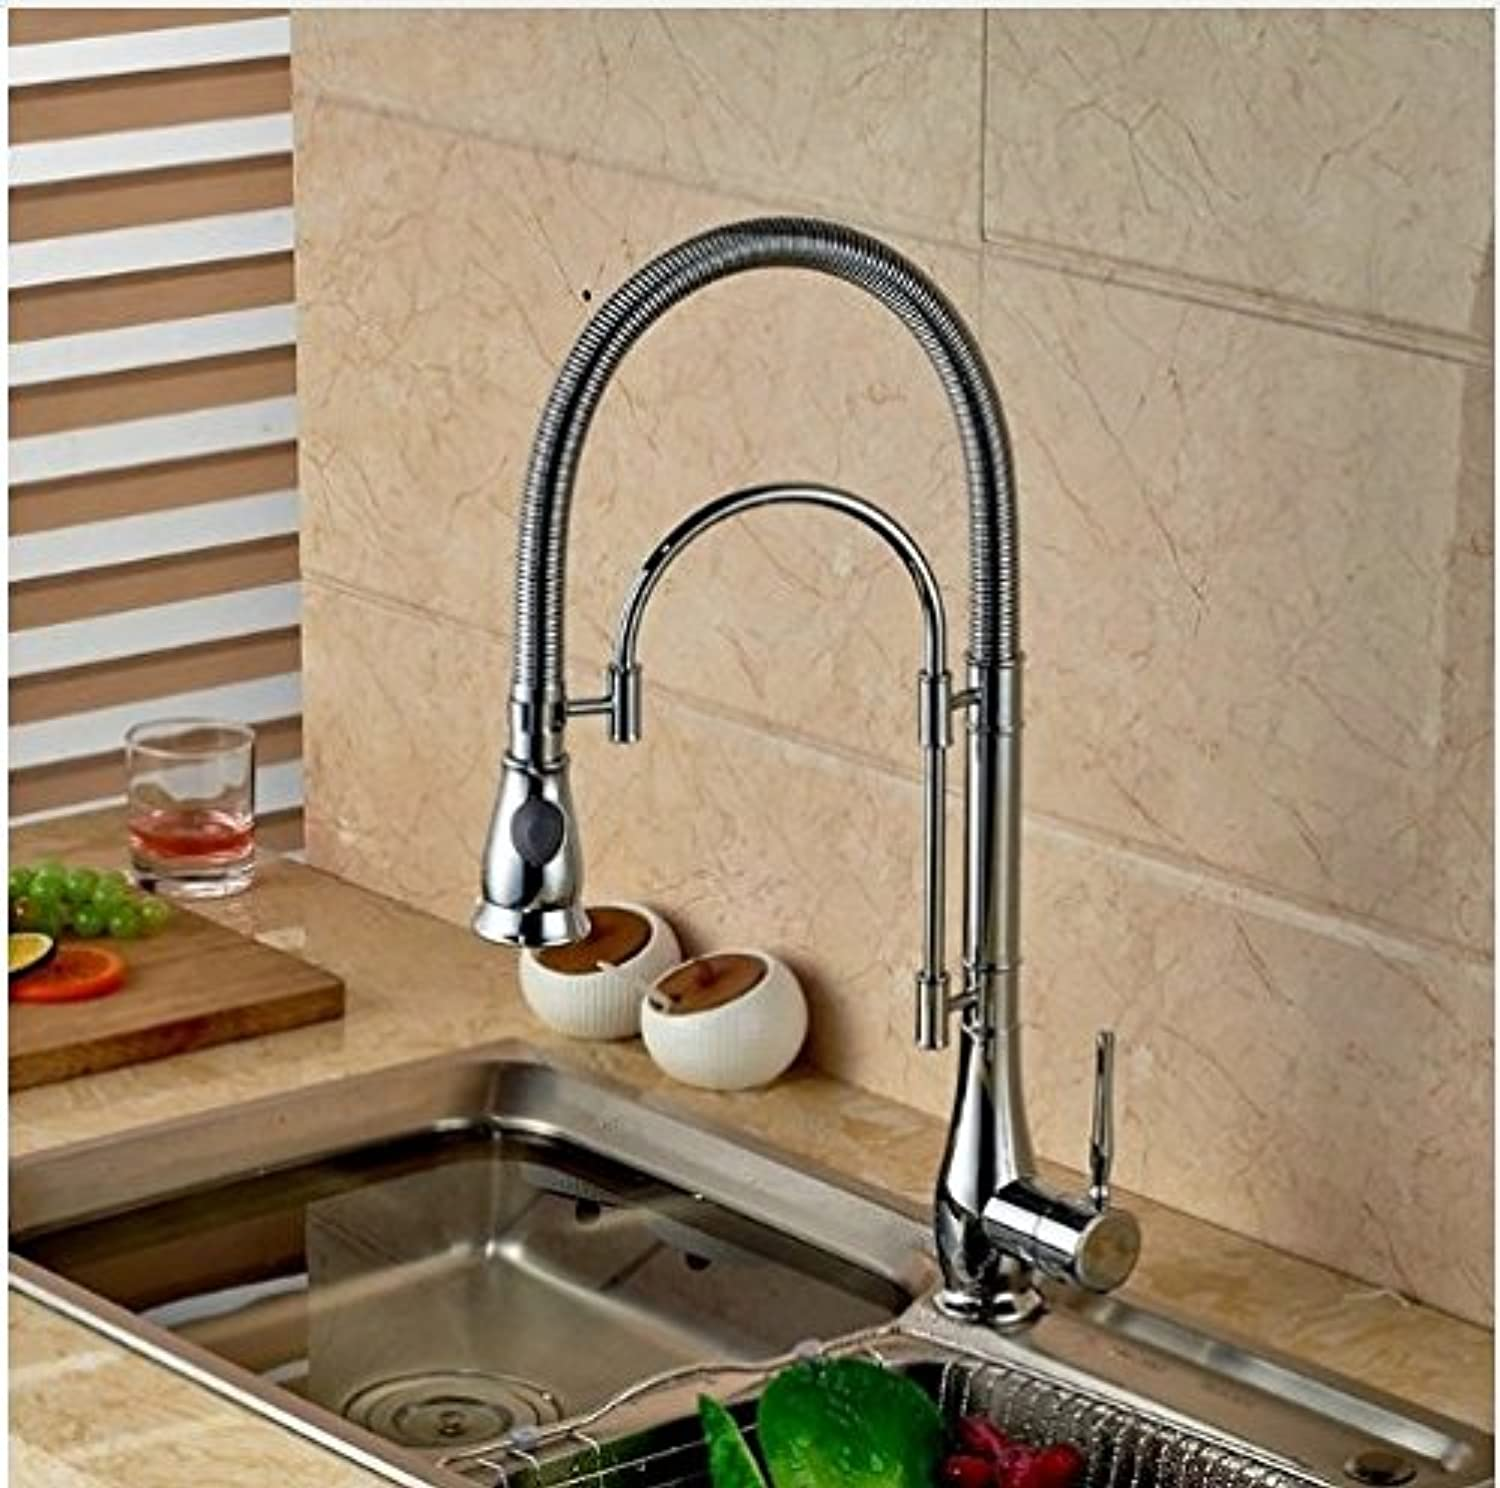 Gowe? Deck Mounted Brass Chrome Polish Kitchen Faucet Pull Down Spout Tall One Hole Mixer Faucet